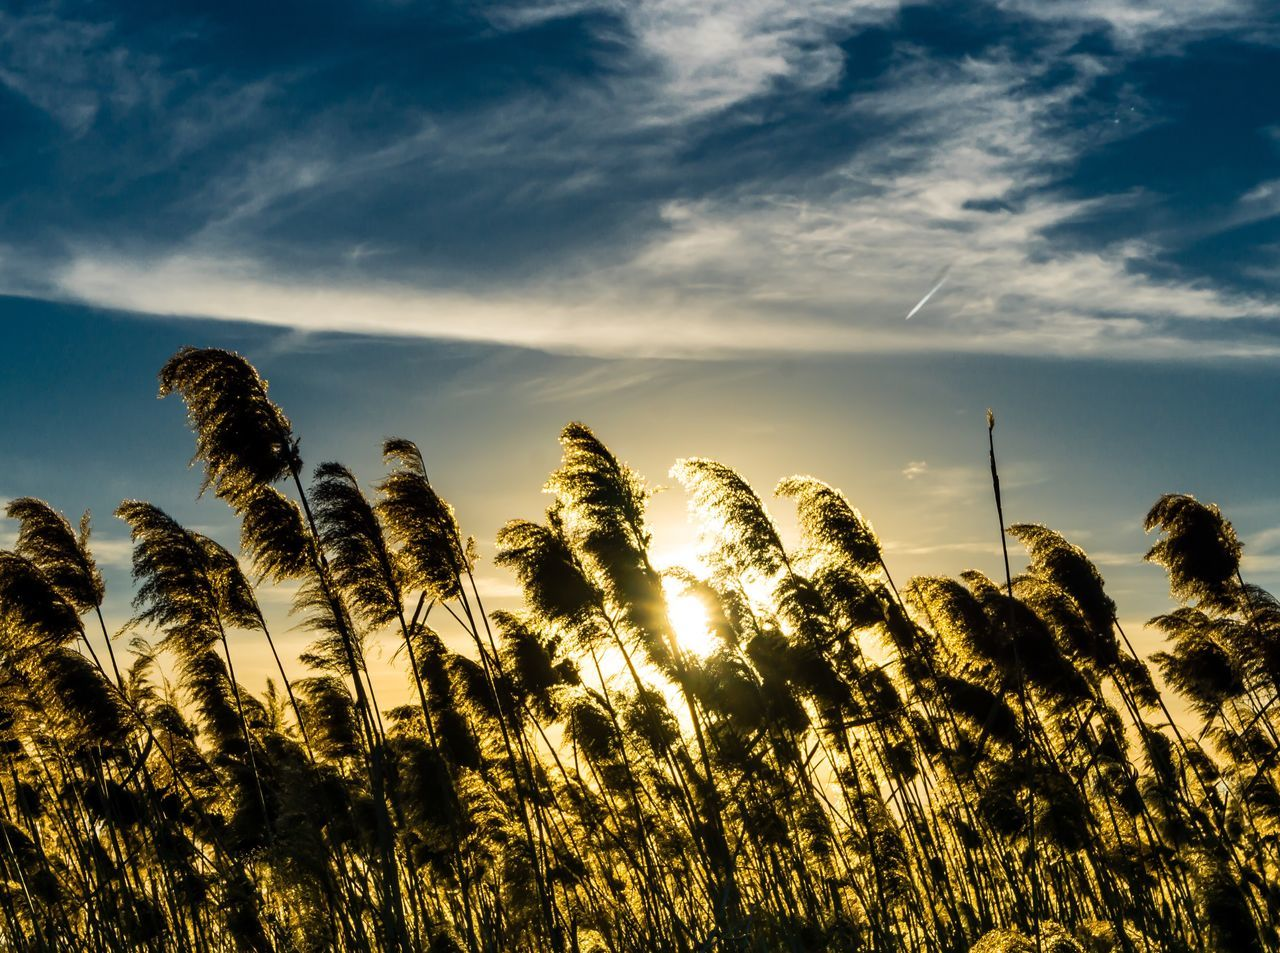 Sunset through the wheat reed. Nature Sky Beauty In Nature Scenics Outdoors Philadelphia Philly Phillyphotographer Photography Landscape Landscape_photography Sunset Wheat Field Wildlife & Nature Sony A6000 50mm Sonyimages